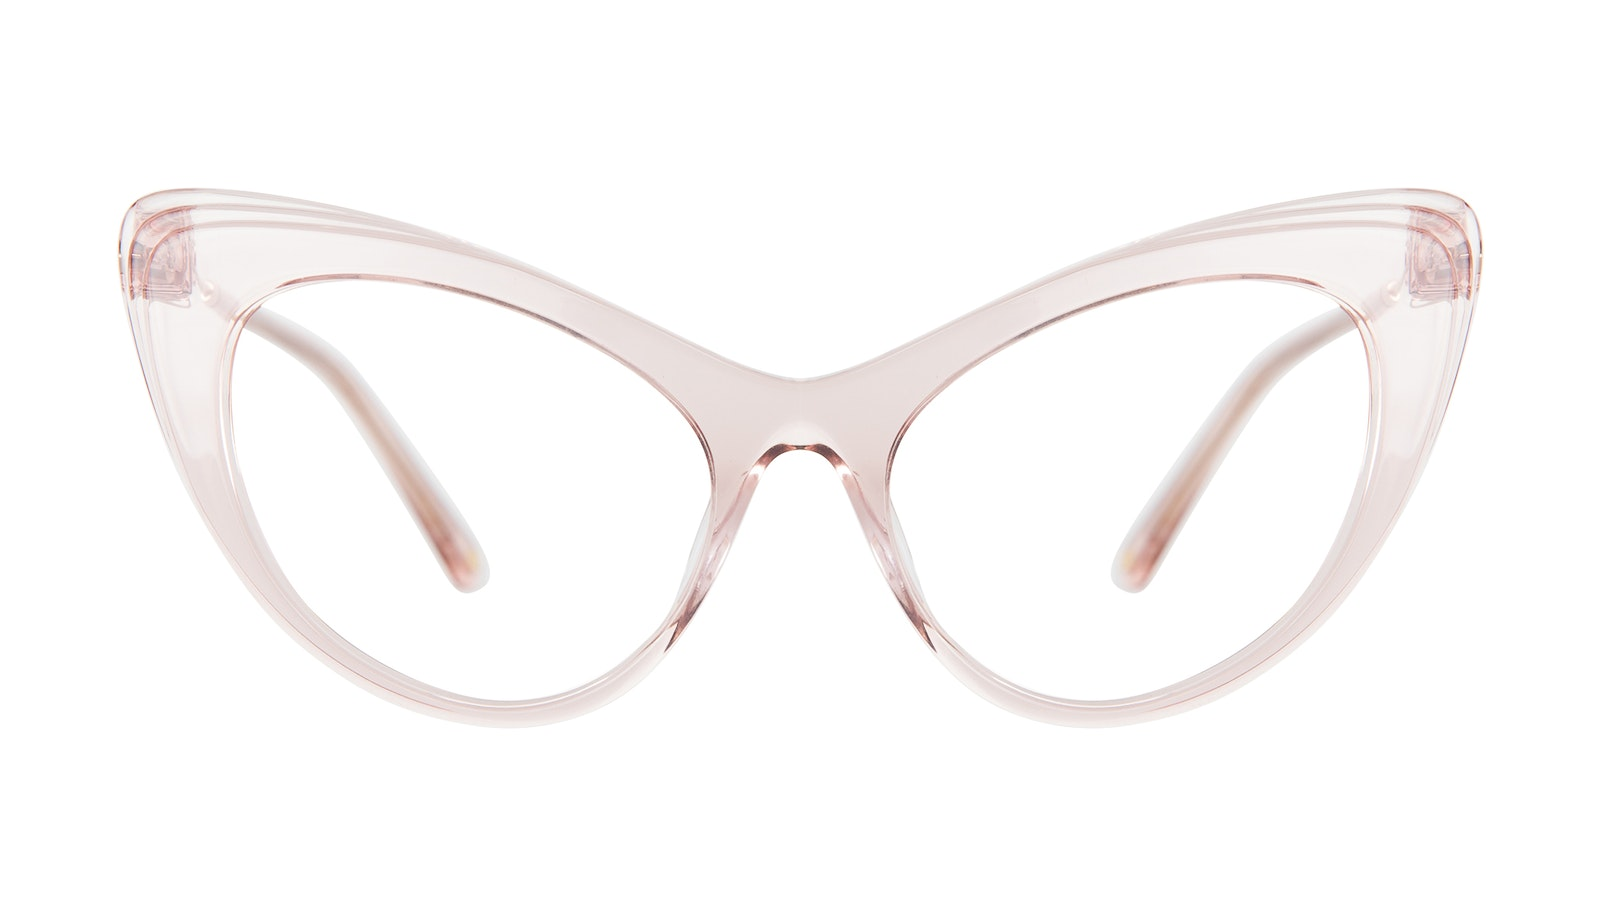 Affordable Fashion Glasses Cat Eye Eyeglasses Women Keiko-Chan Sakura